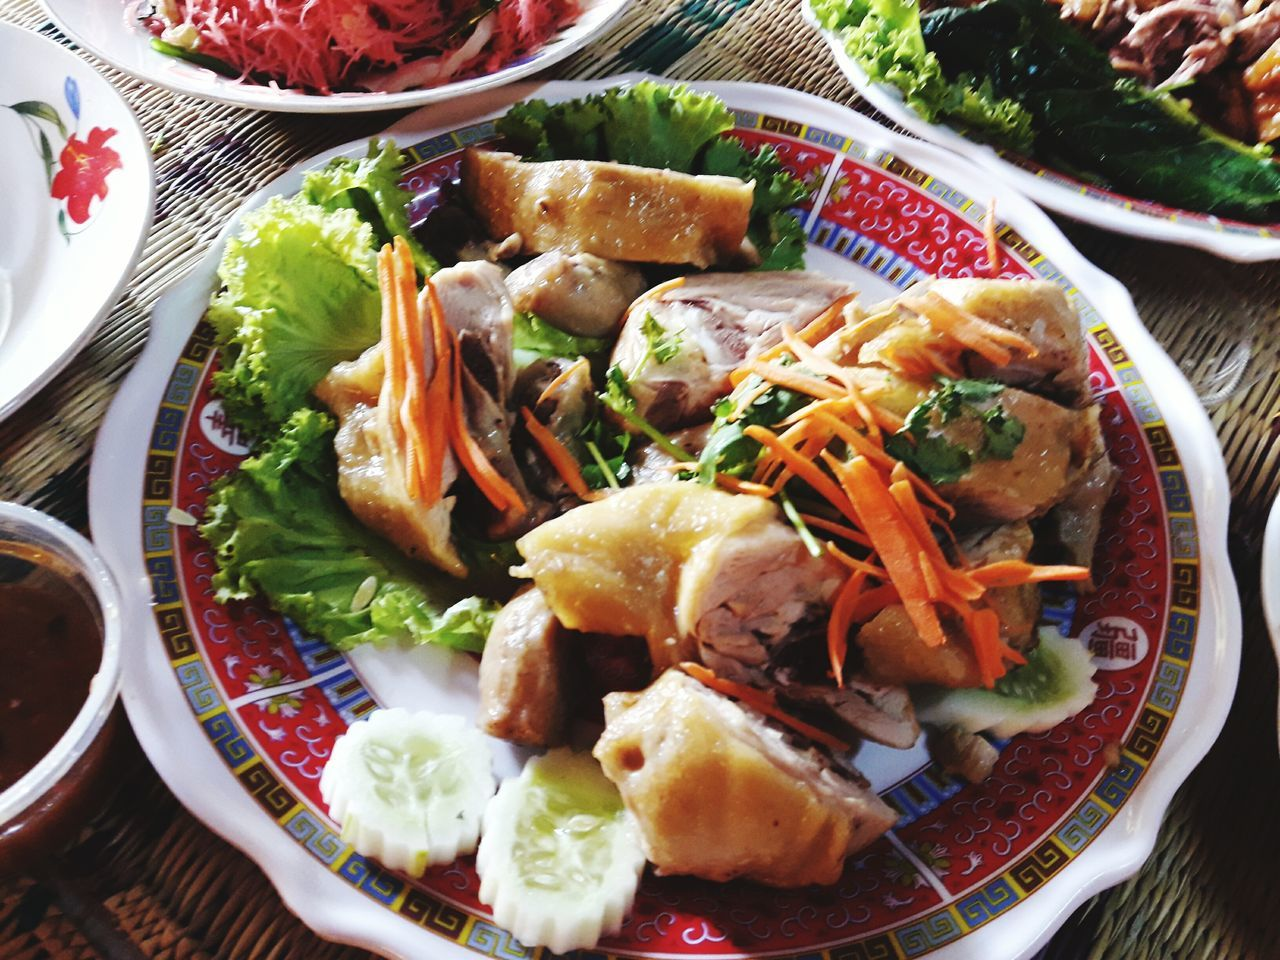 Food And Drink Food Healthy Eating No People Ready-to-eat Ceremony ThaiFoodGoodTaste Wedding Celebration Chinese Food Thaifood Freshness Chickens Chiken Salad